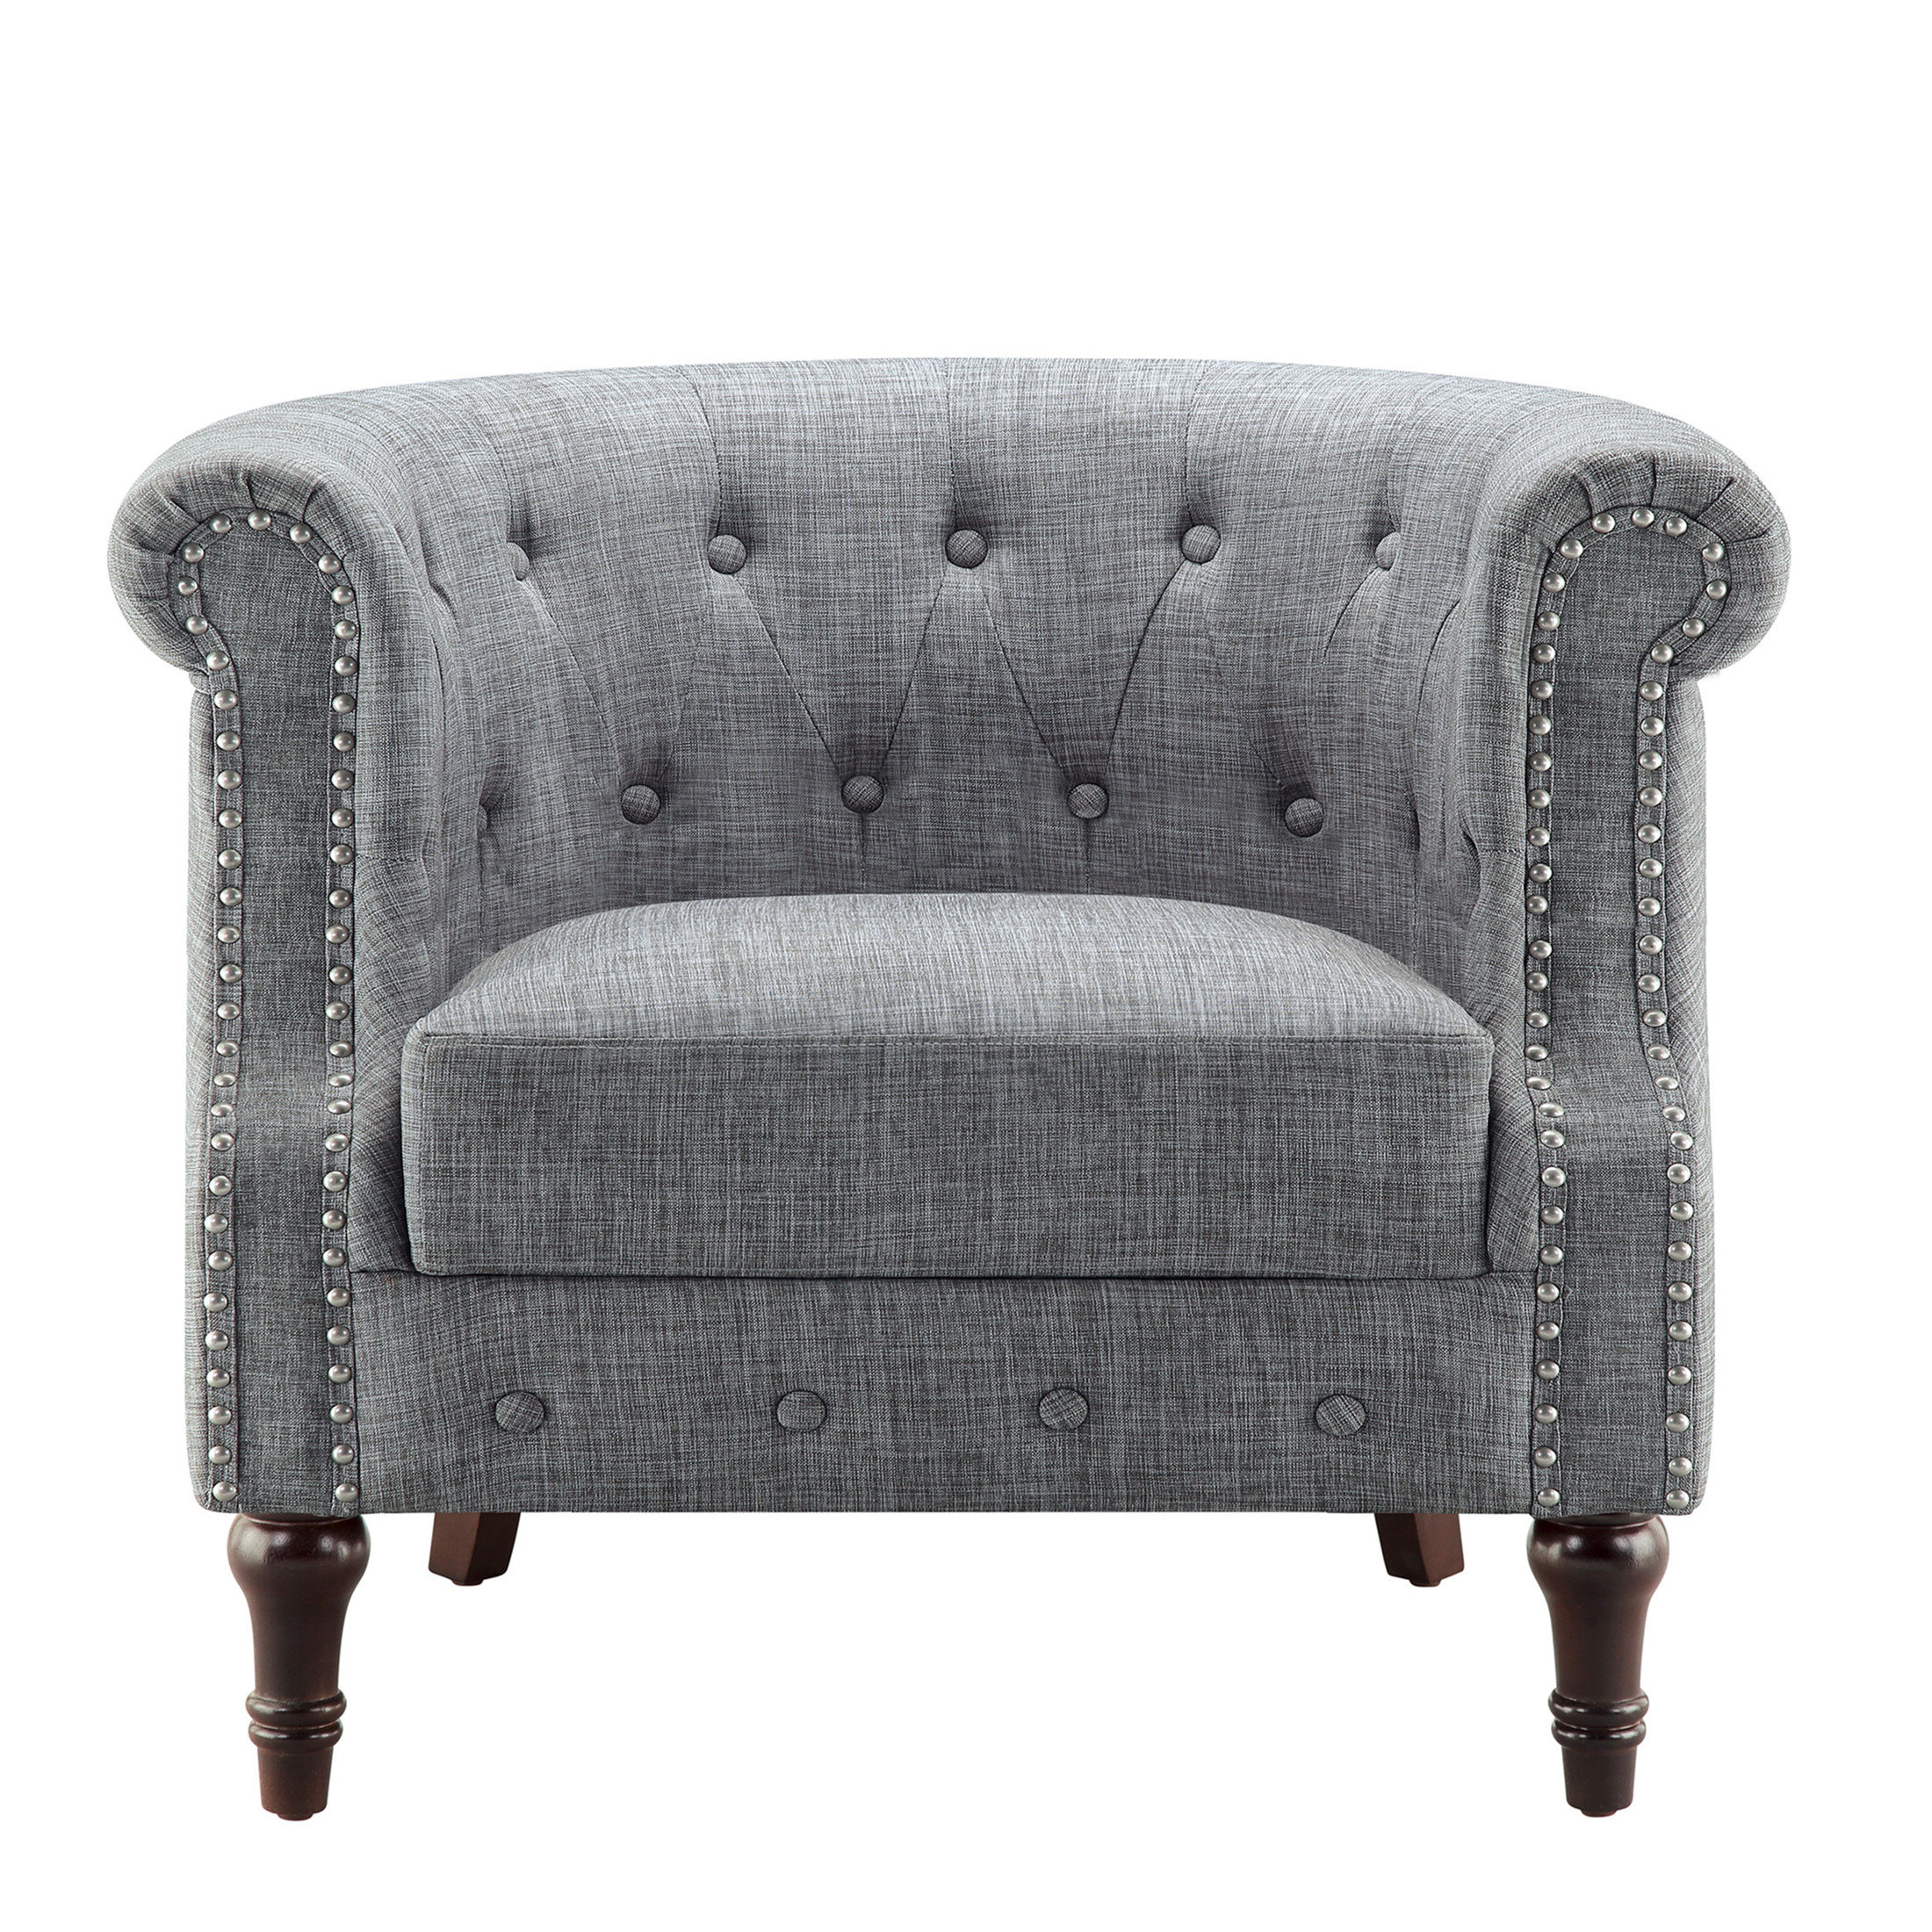 Chesterfield Espresso Wood Accent Chairs You'll Love In 2021 In Well Known Kjellfrid Chesterfield Chairs (View 9 of 20)